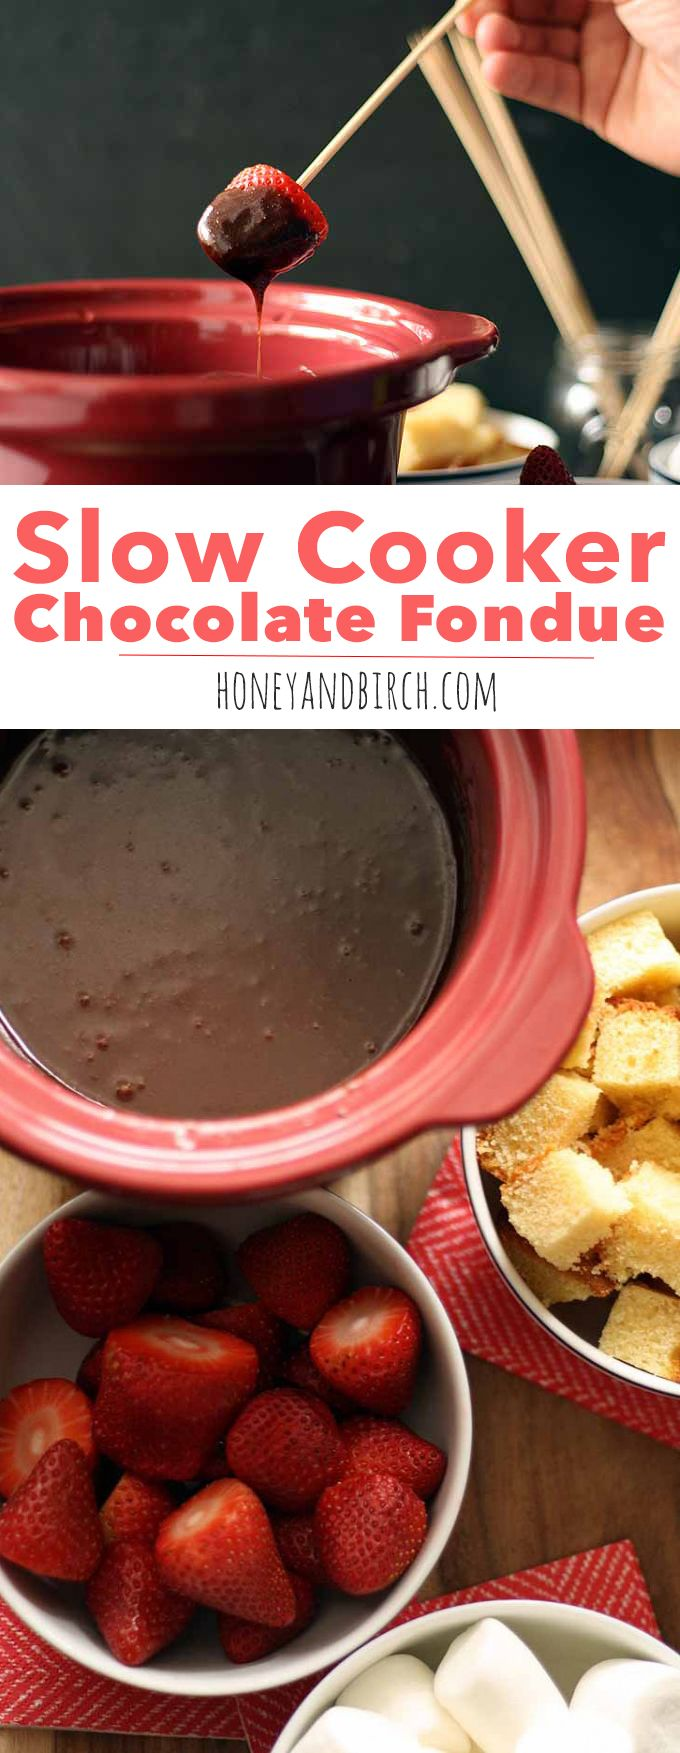 Slow Cooker Chocolate Fondue Crock Pot Desserts Chocolate Fondue Recipe Desserts